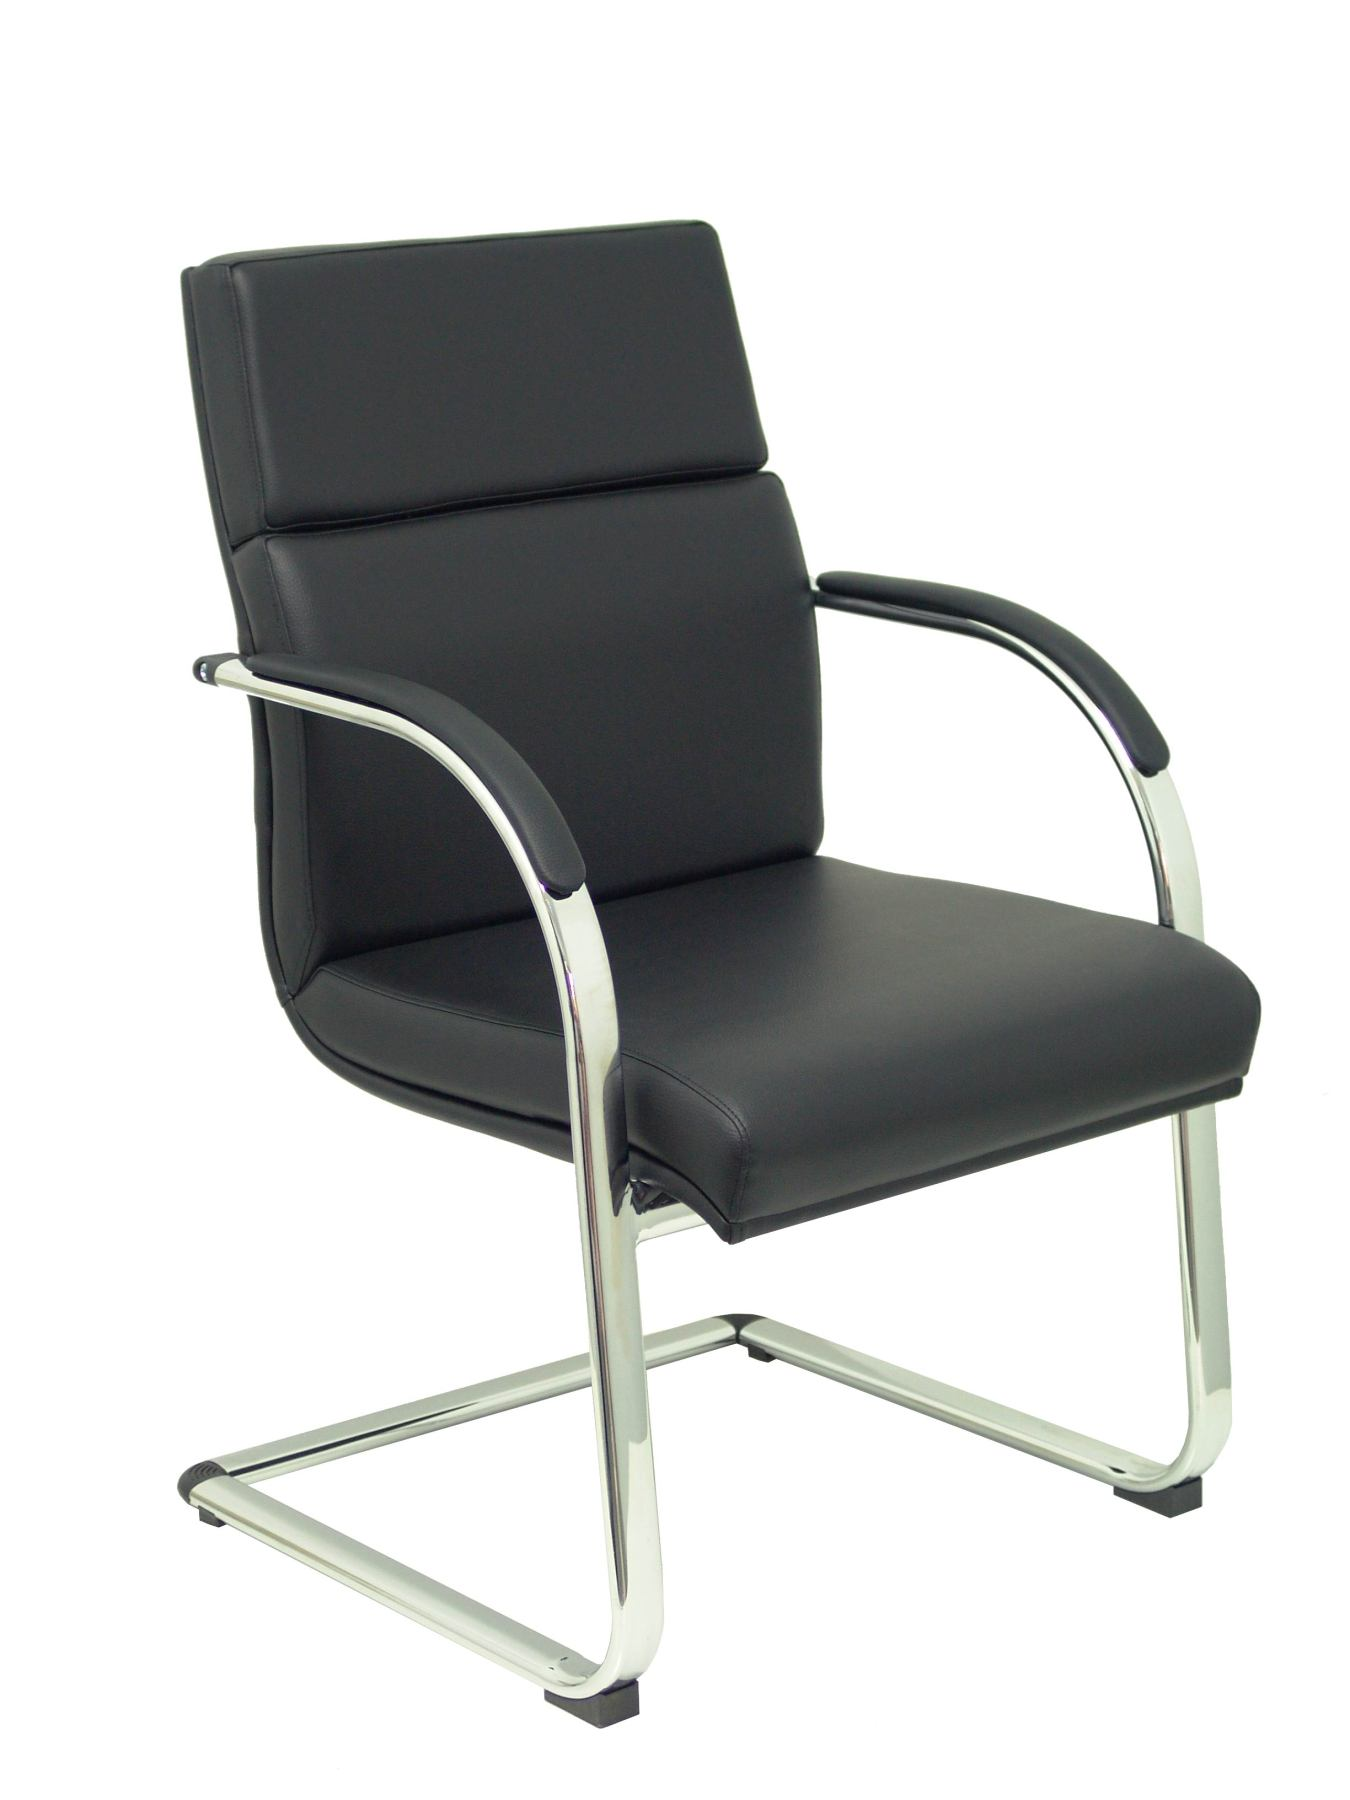 Chair Ergonomic Office Confidant/standby Structure Chrome Upholstered Arms-Seat And Back Upholstered